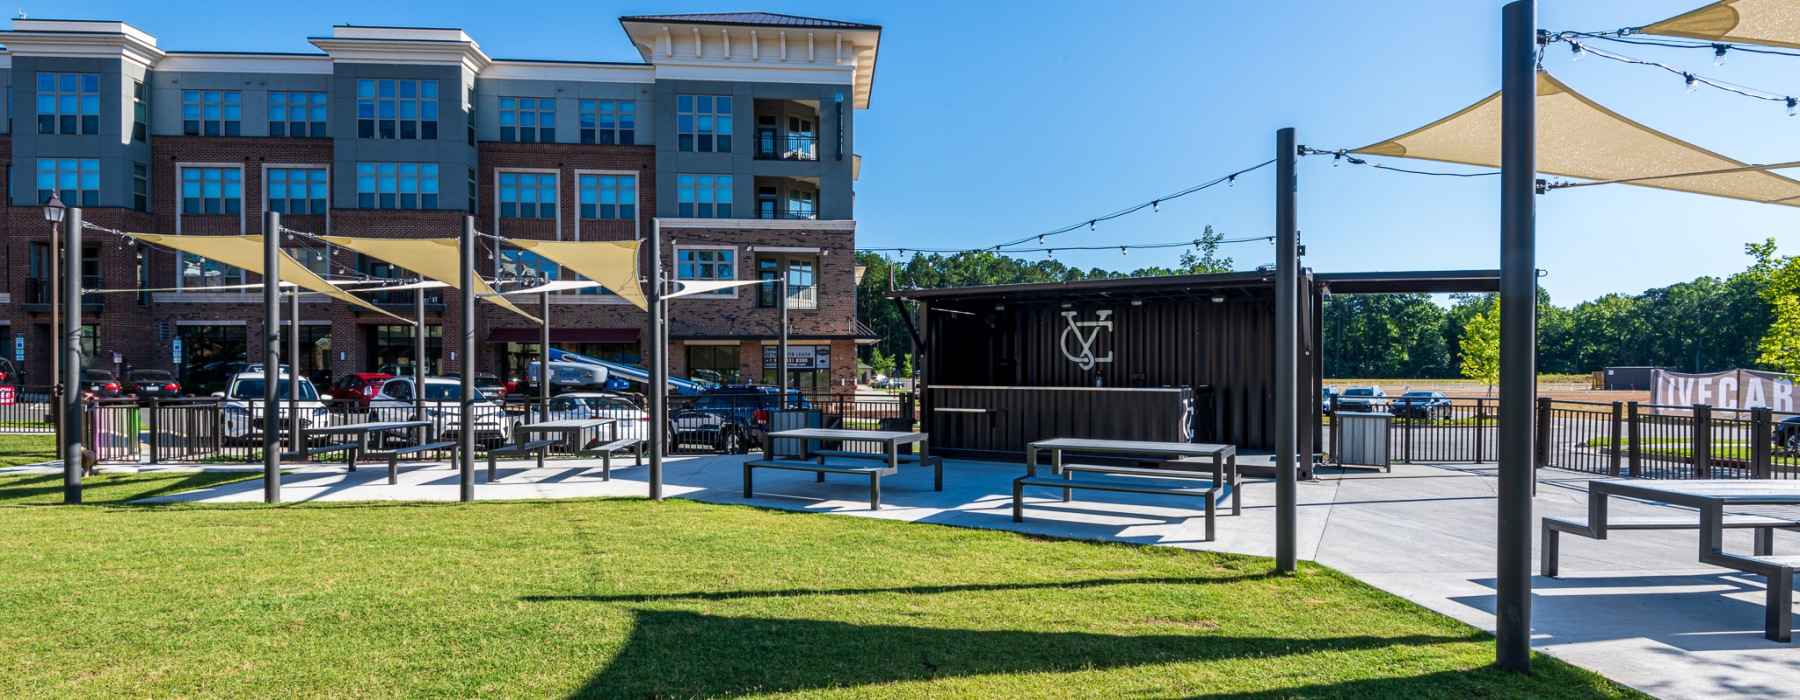 Beer garden at Carraway Village Apartments in Chapel Hill, NC